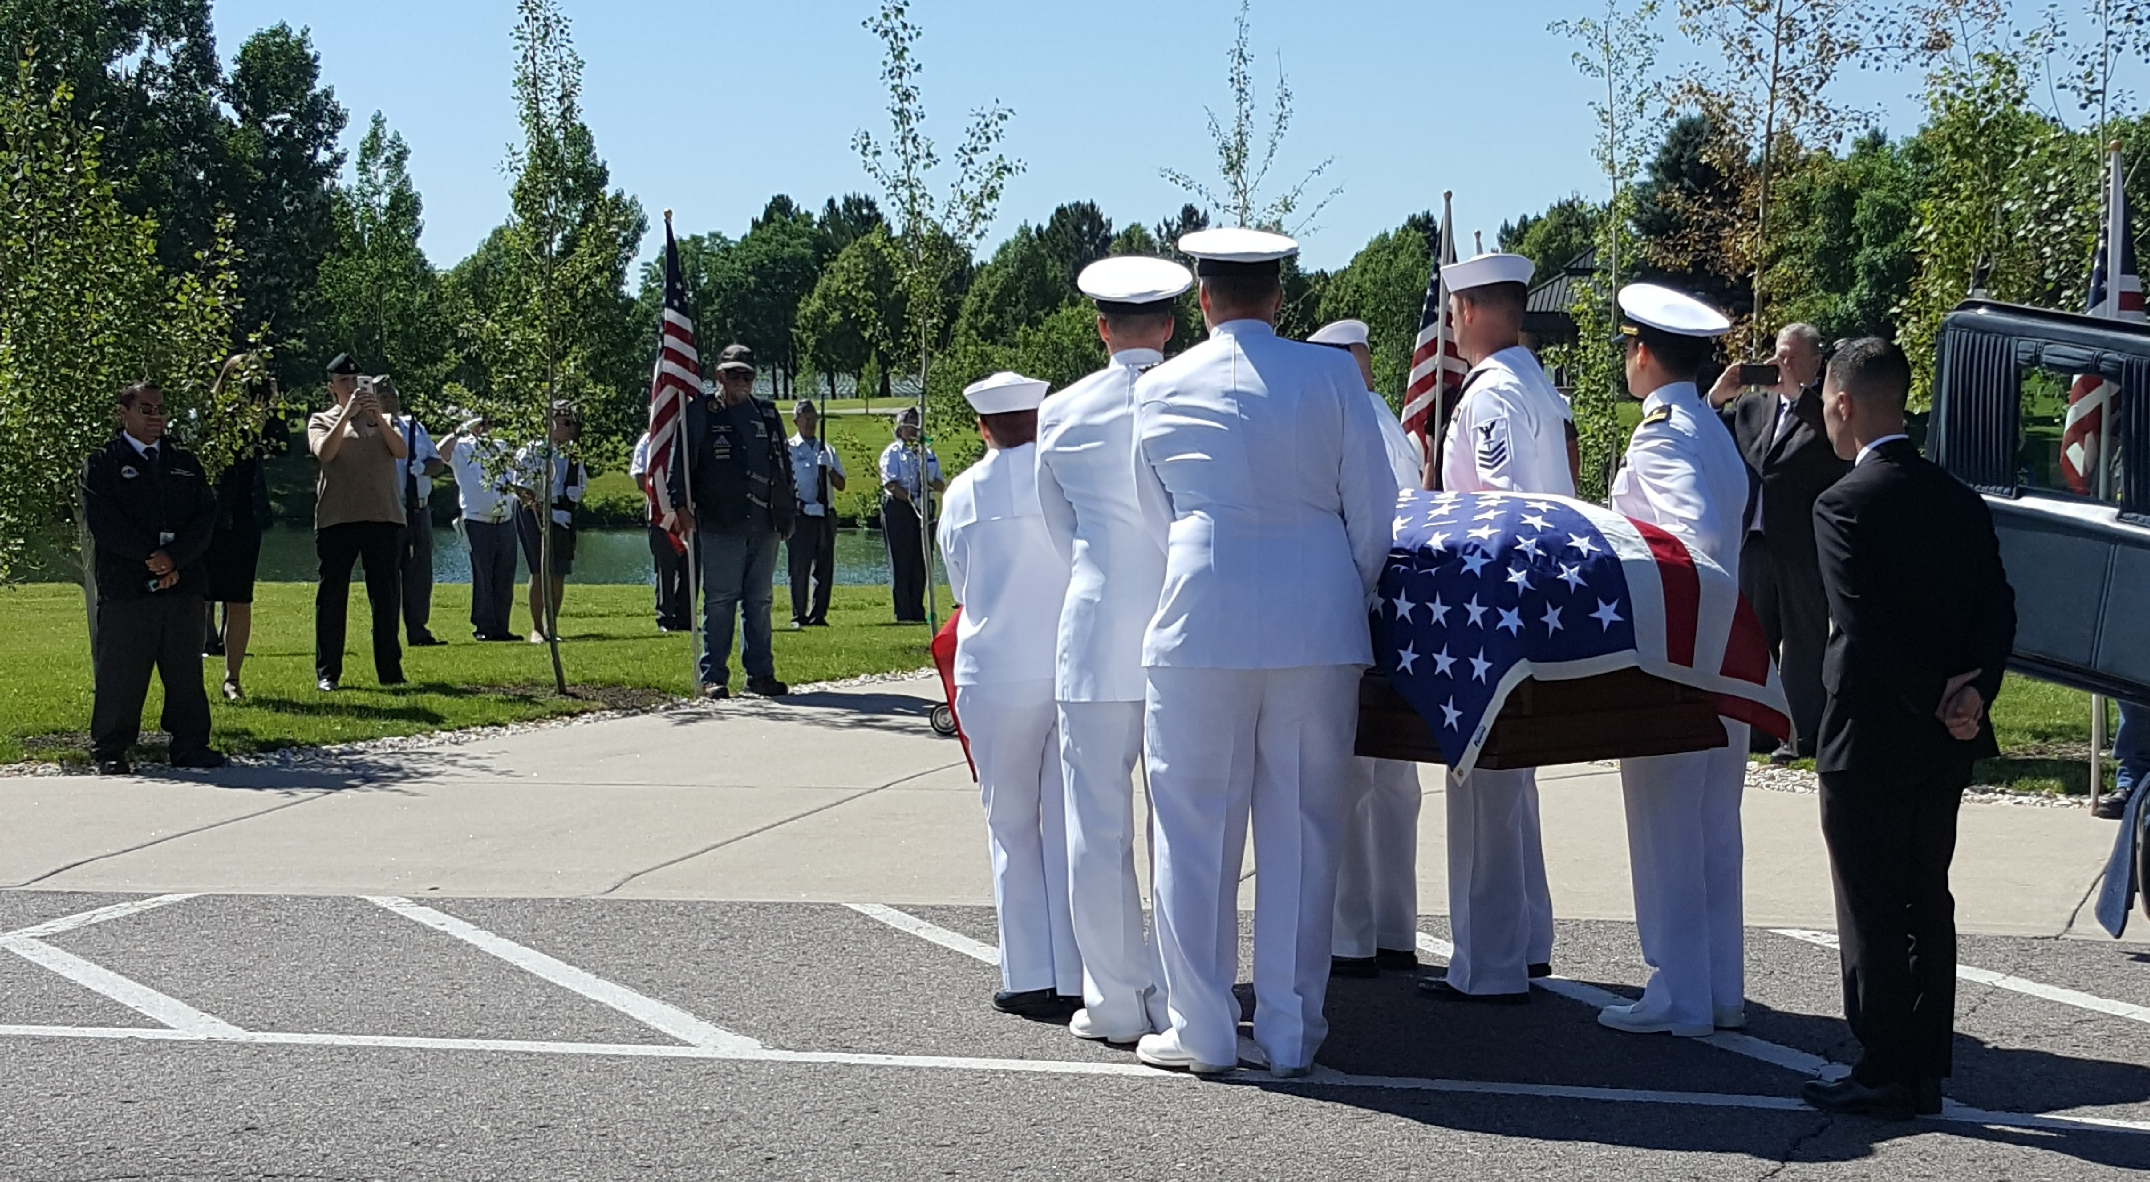 The flag-draped casket carrying the remains of sailor Wallace Eakes is carried by a Naval Honor Guard to a committal shelter at Fort Logan National Cemetery.